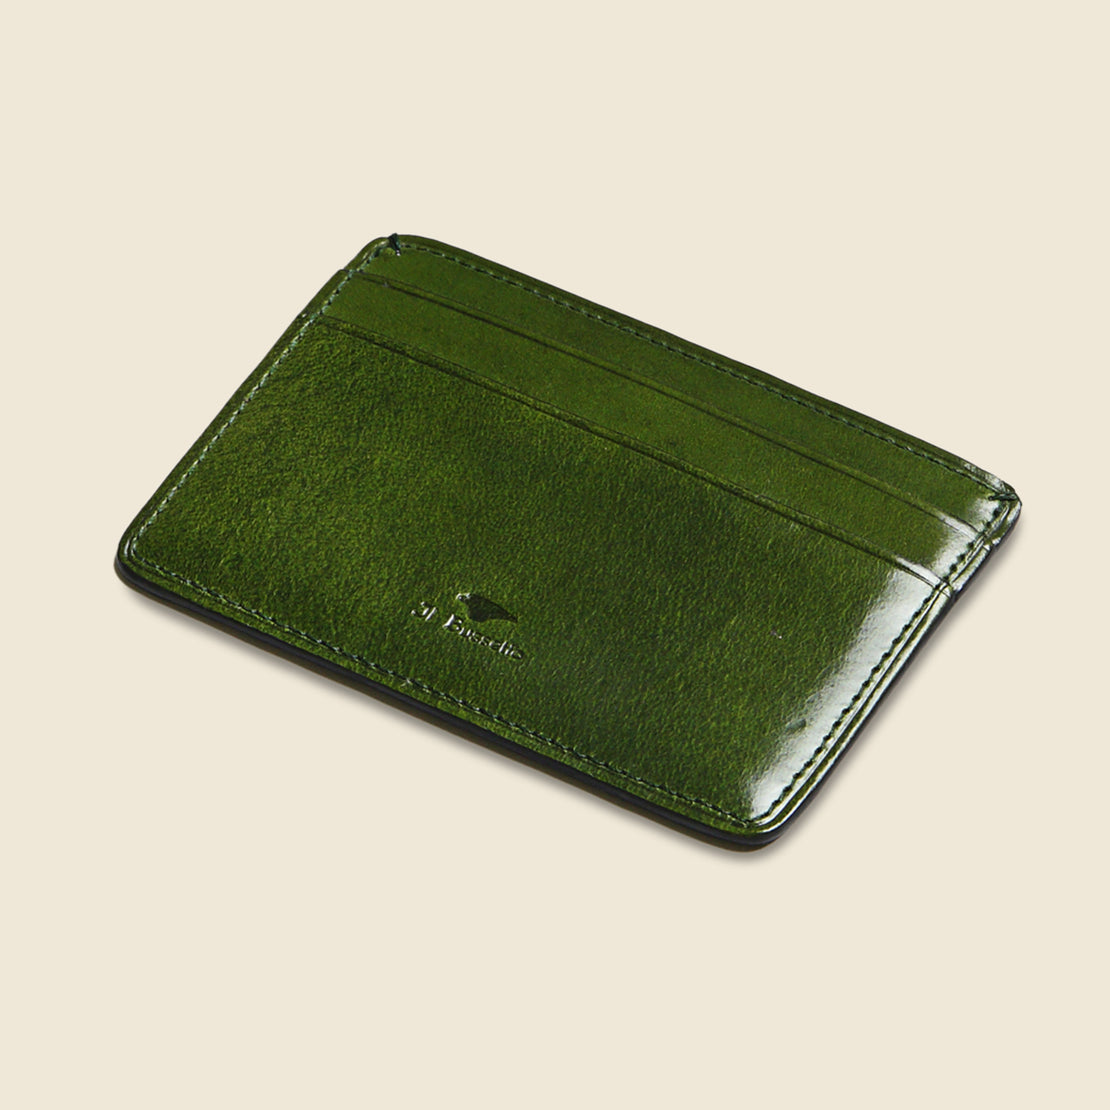 Credit Card Case - Green